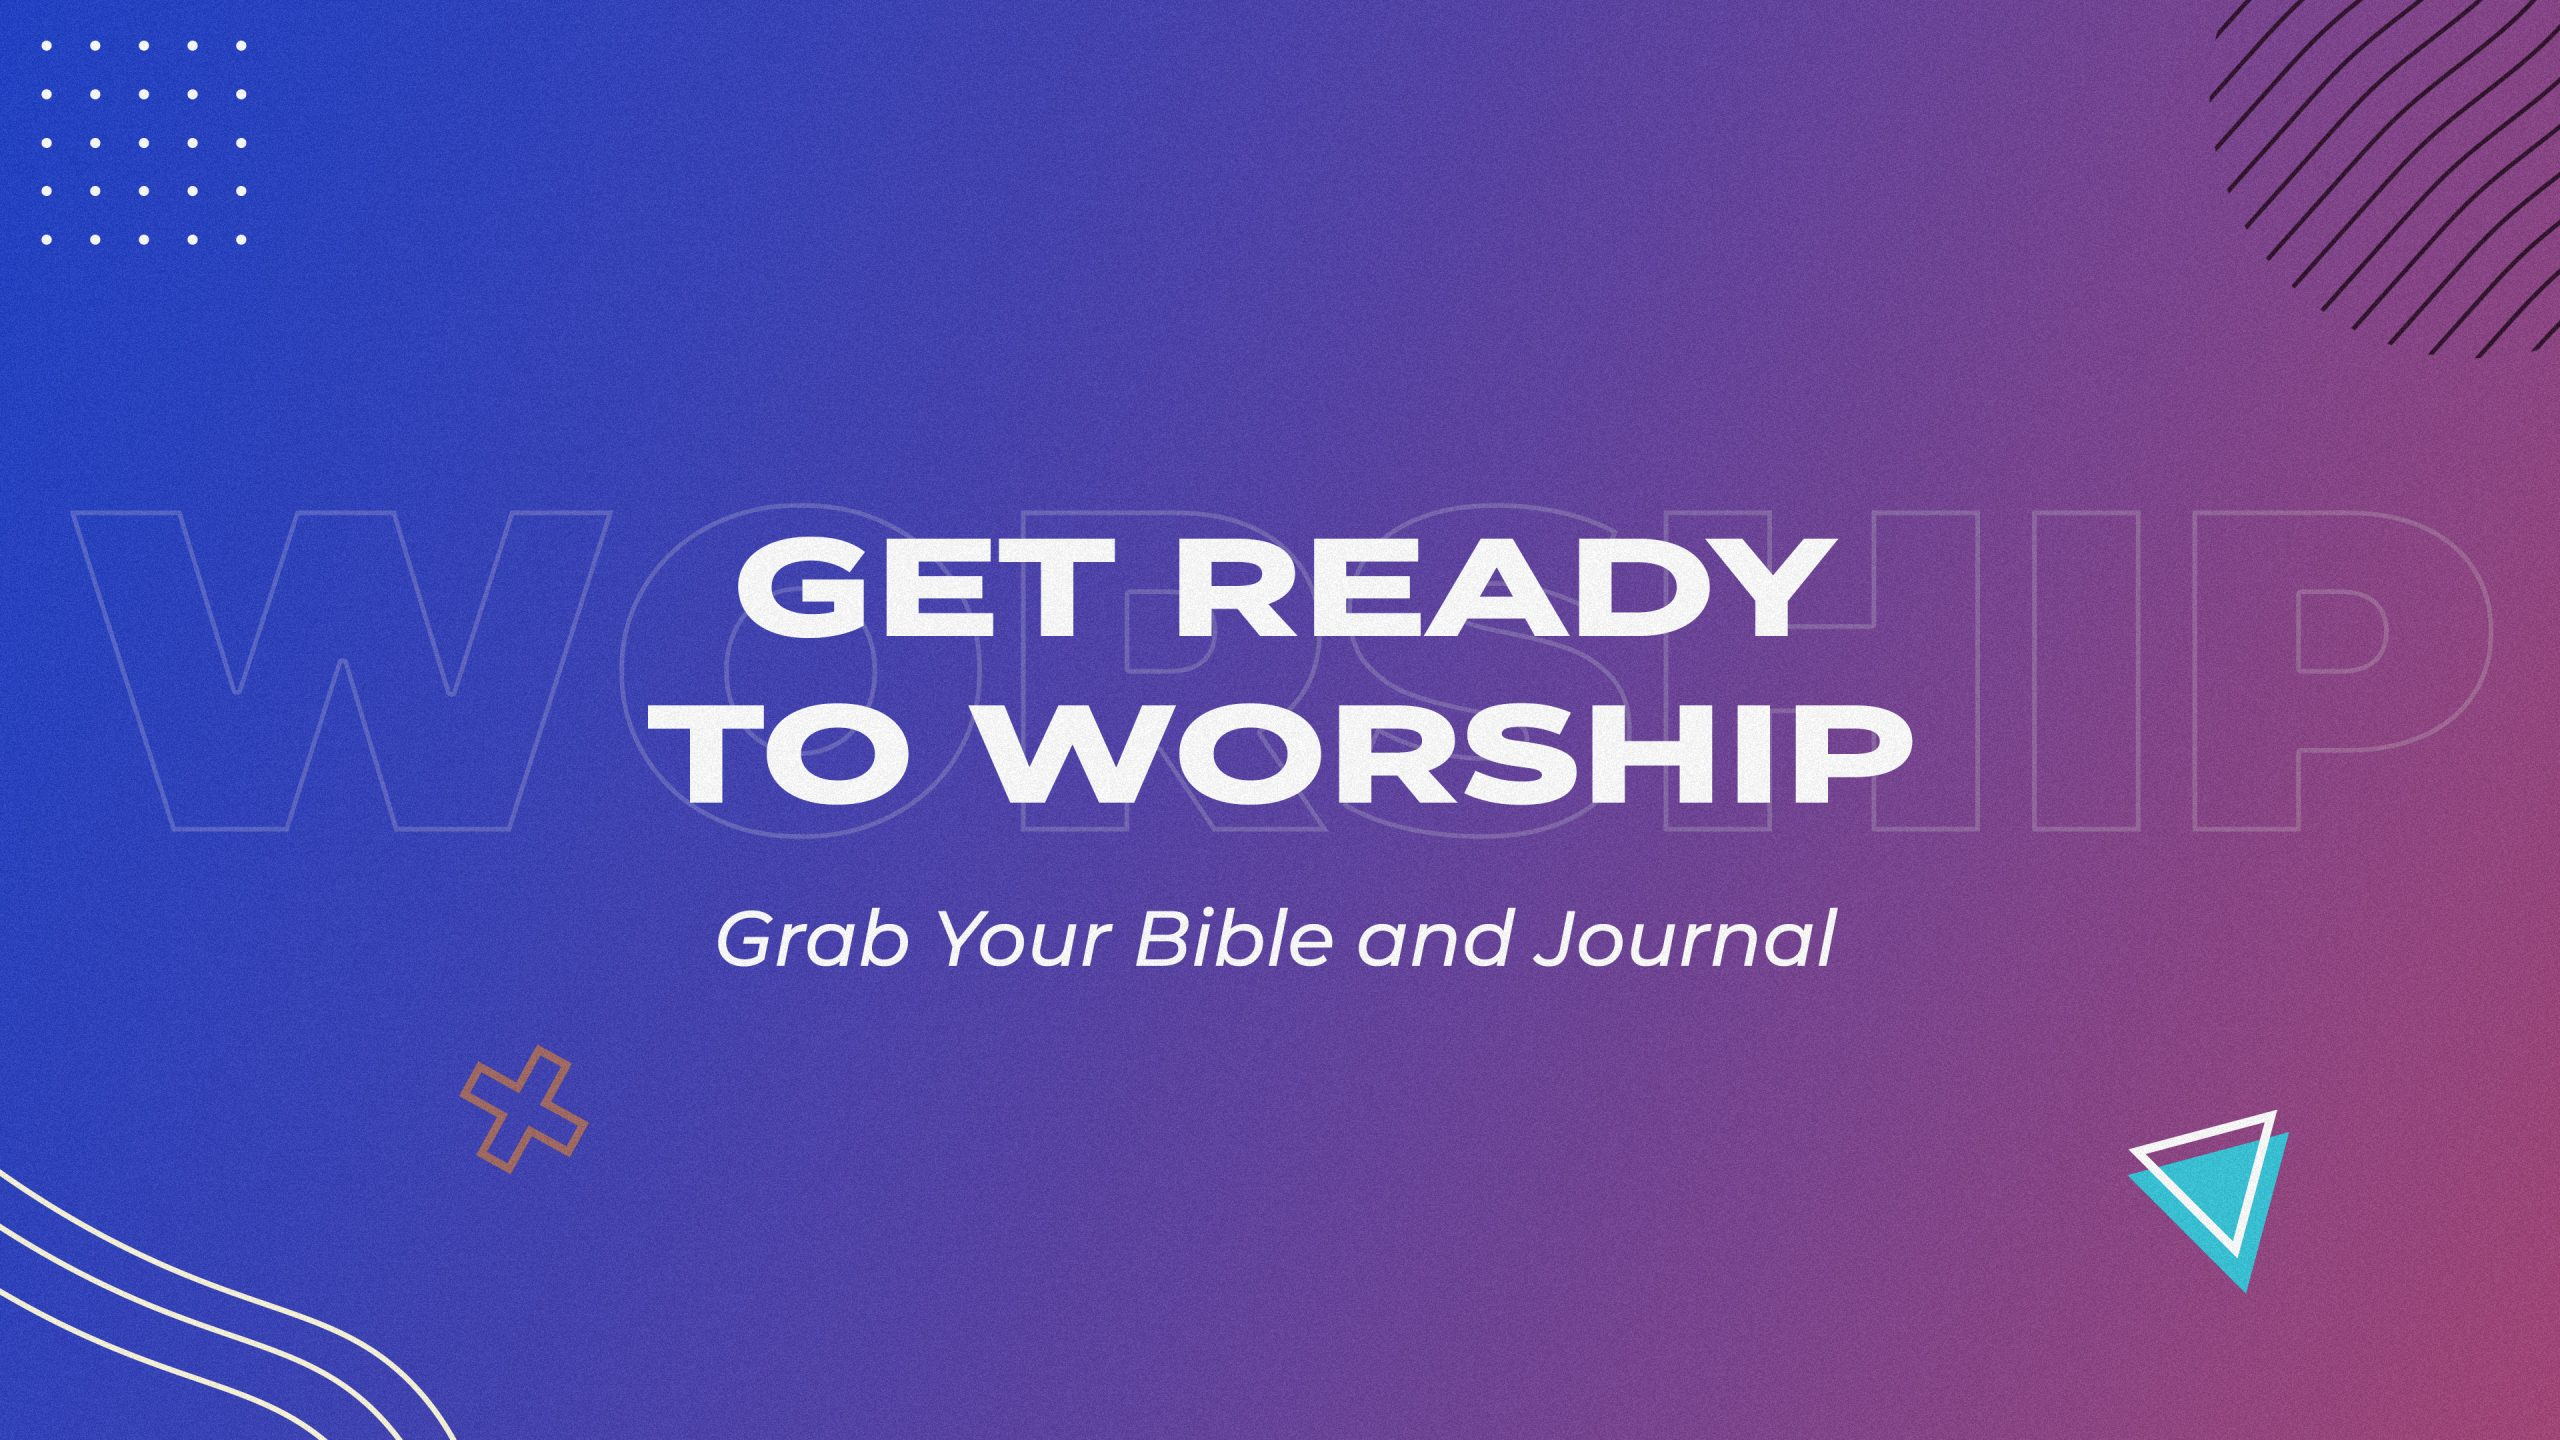 Get Ready to Worship - Grab Your Bible and Journal